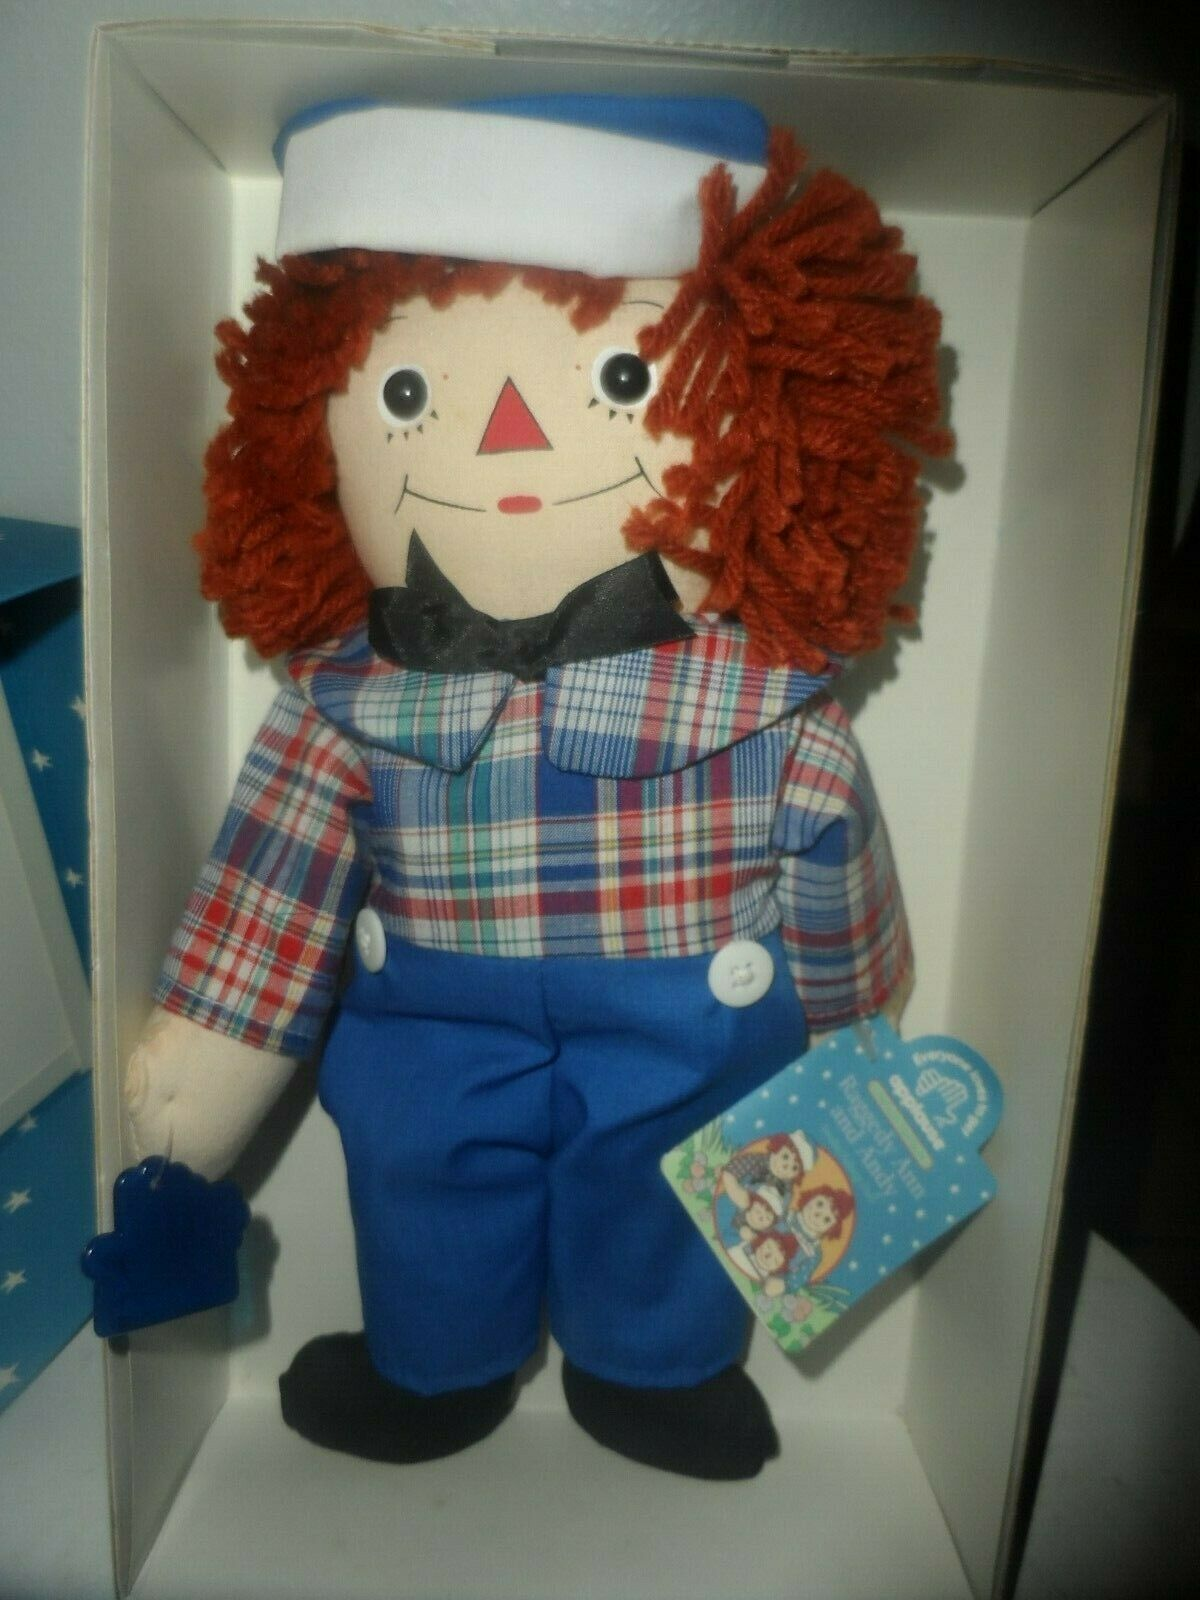 LIMITED EDITION Raggedy Andy Awake/Asleep Doll by Applause